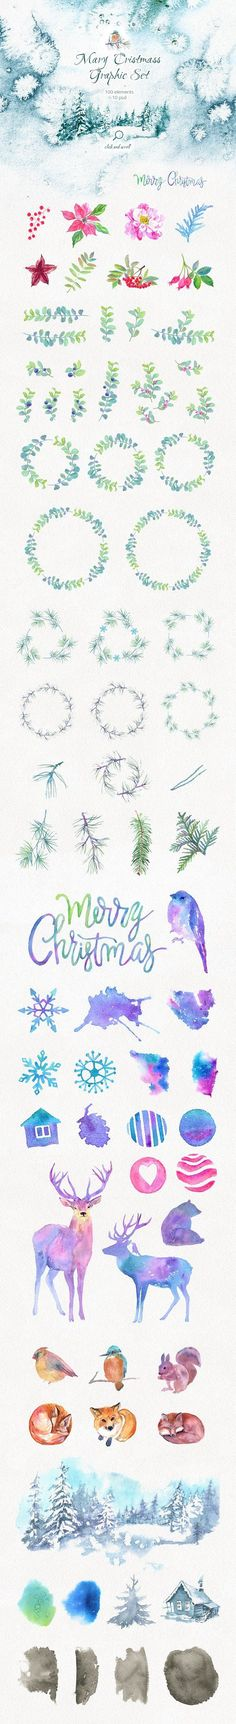 Merry Christmas Graphic Set. +10 PSD by le-genda on @creativemarket